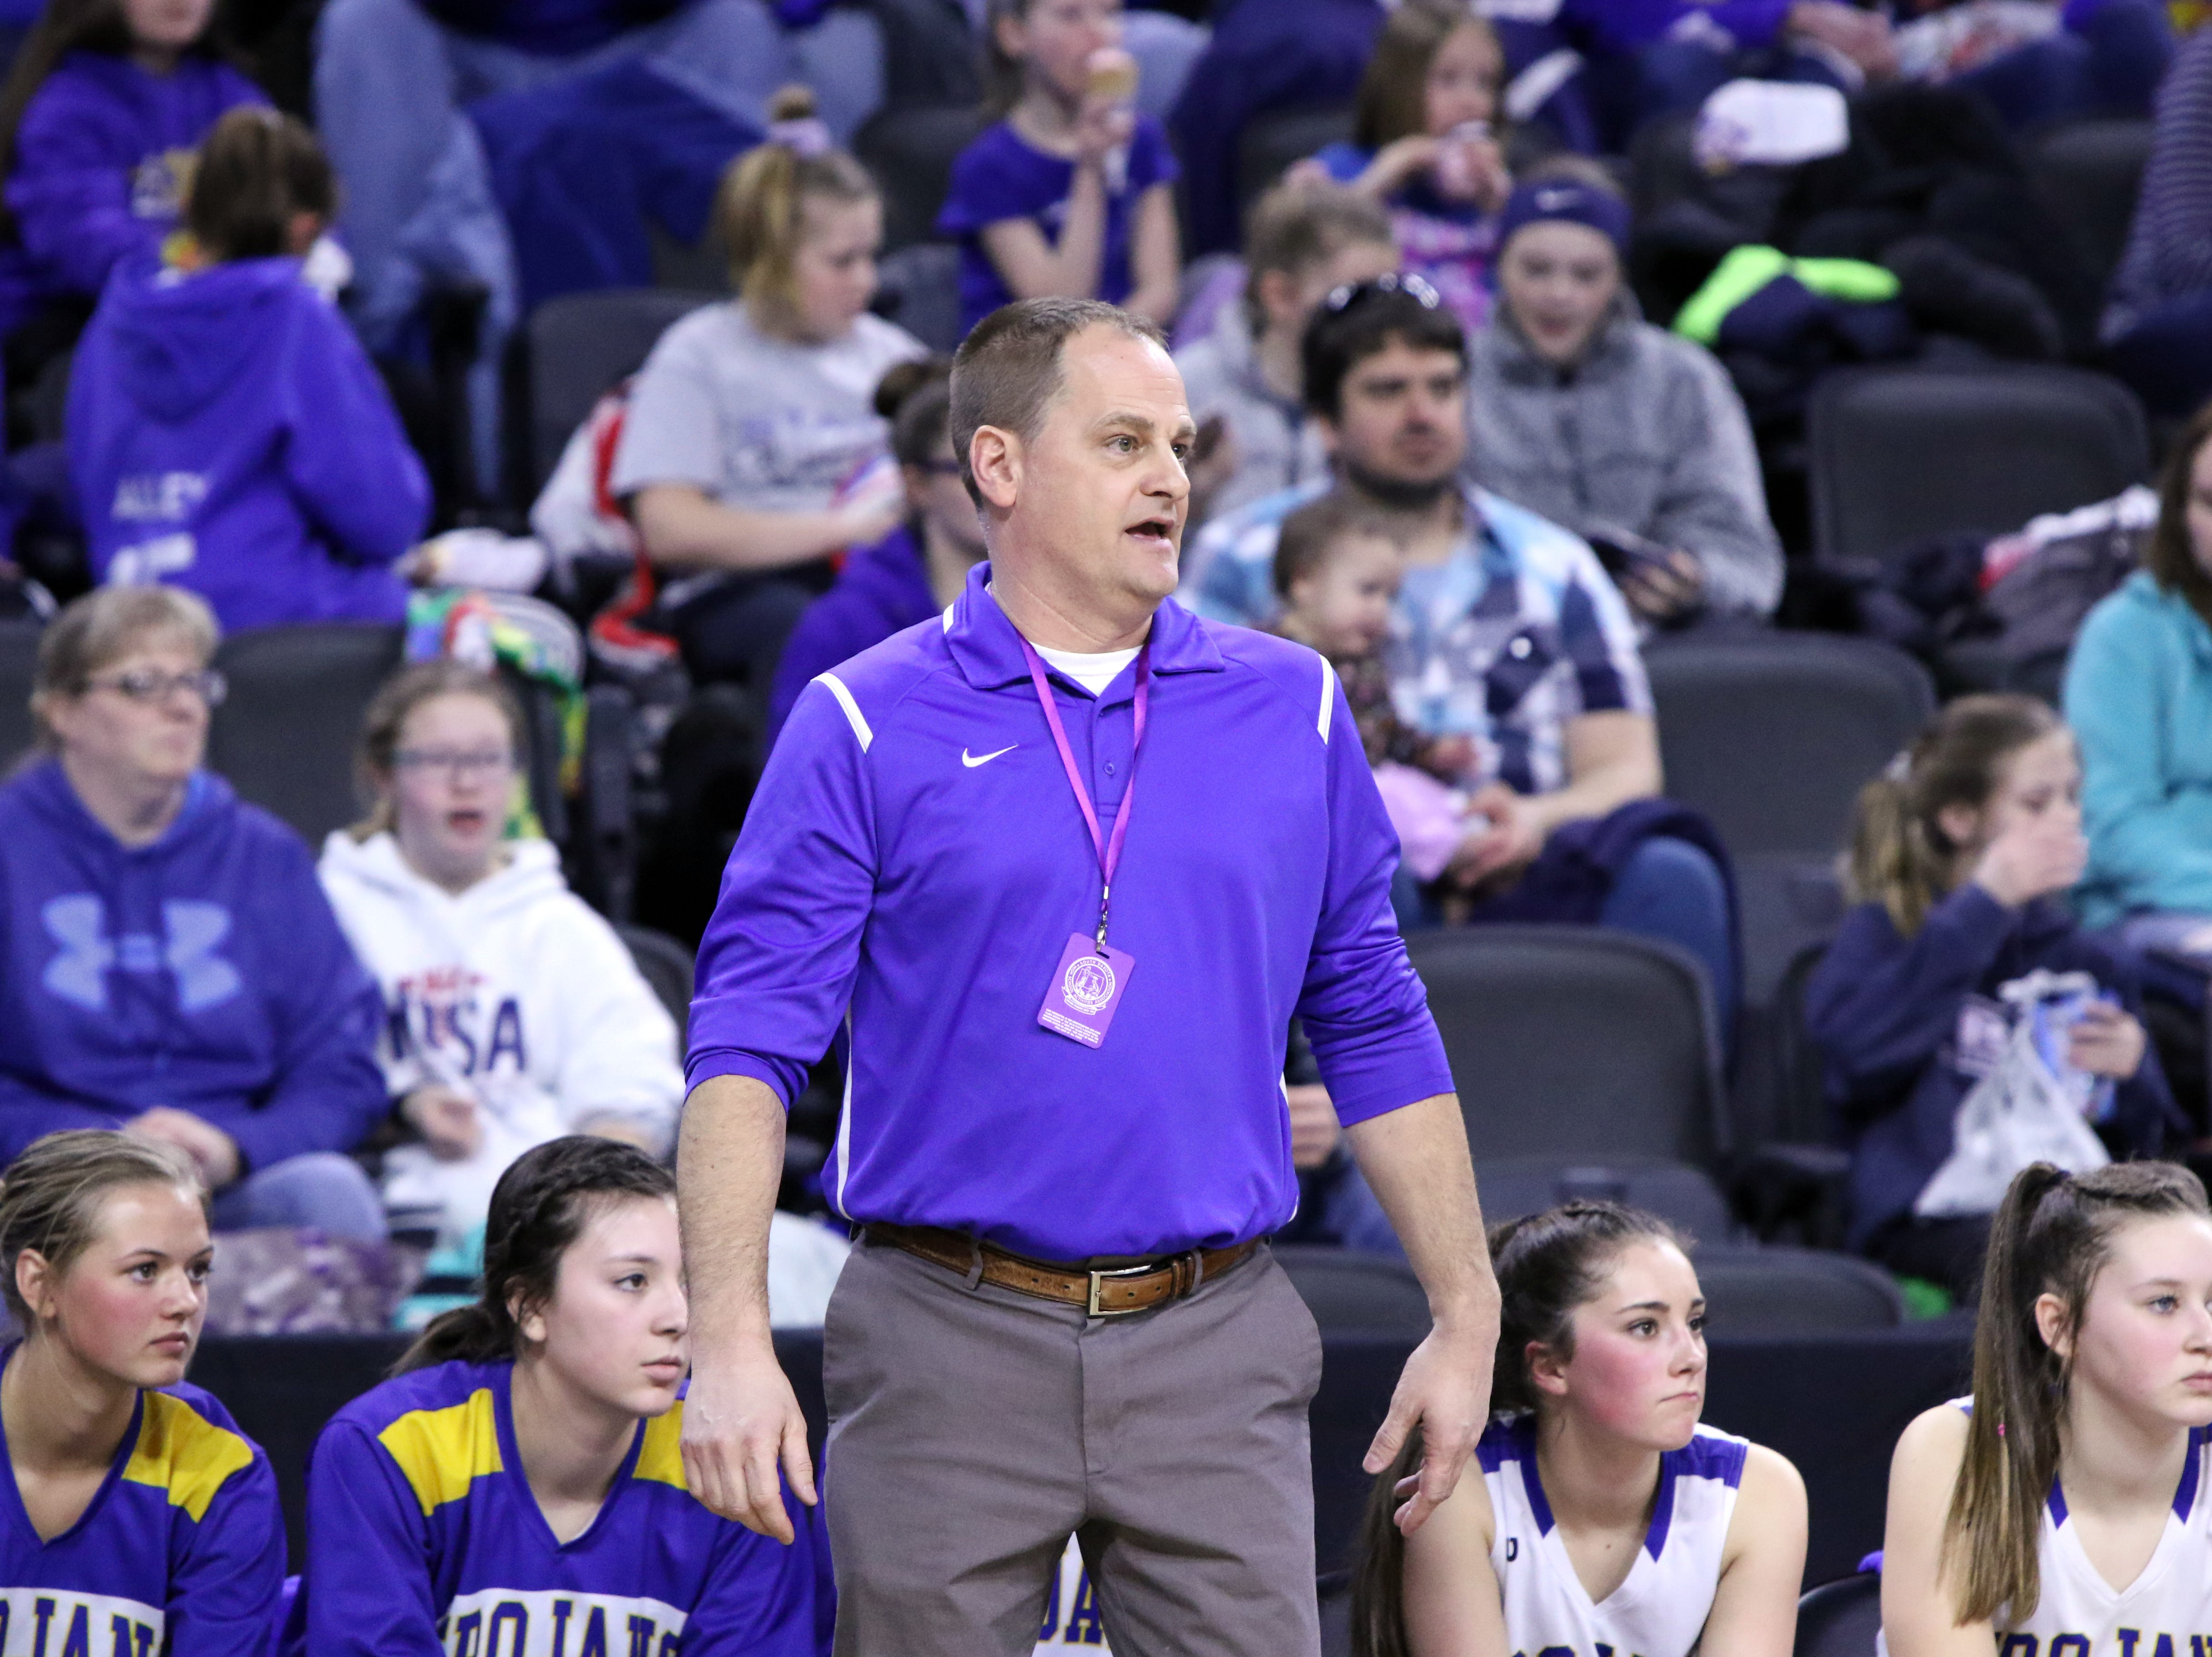 West Central Head Coach, Joe Caffrey watches the action during Thursday's game against Mt Vernon-Plankinton at the Premier Center in Sioux Falls.